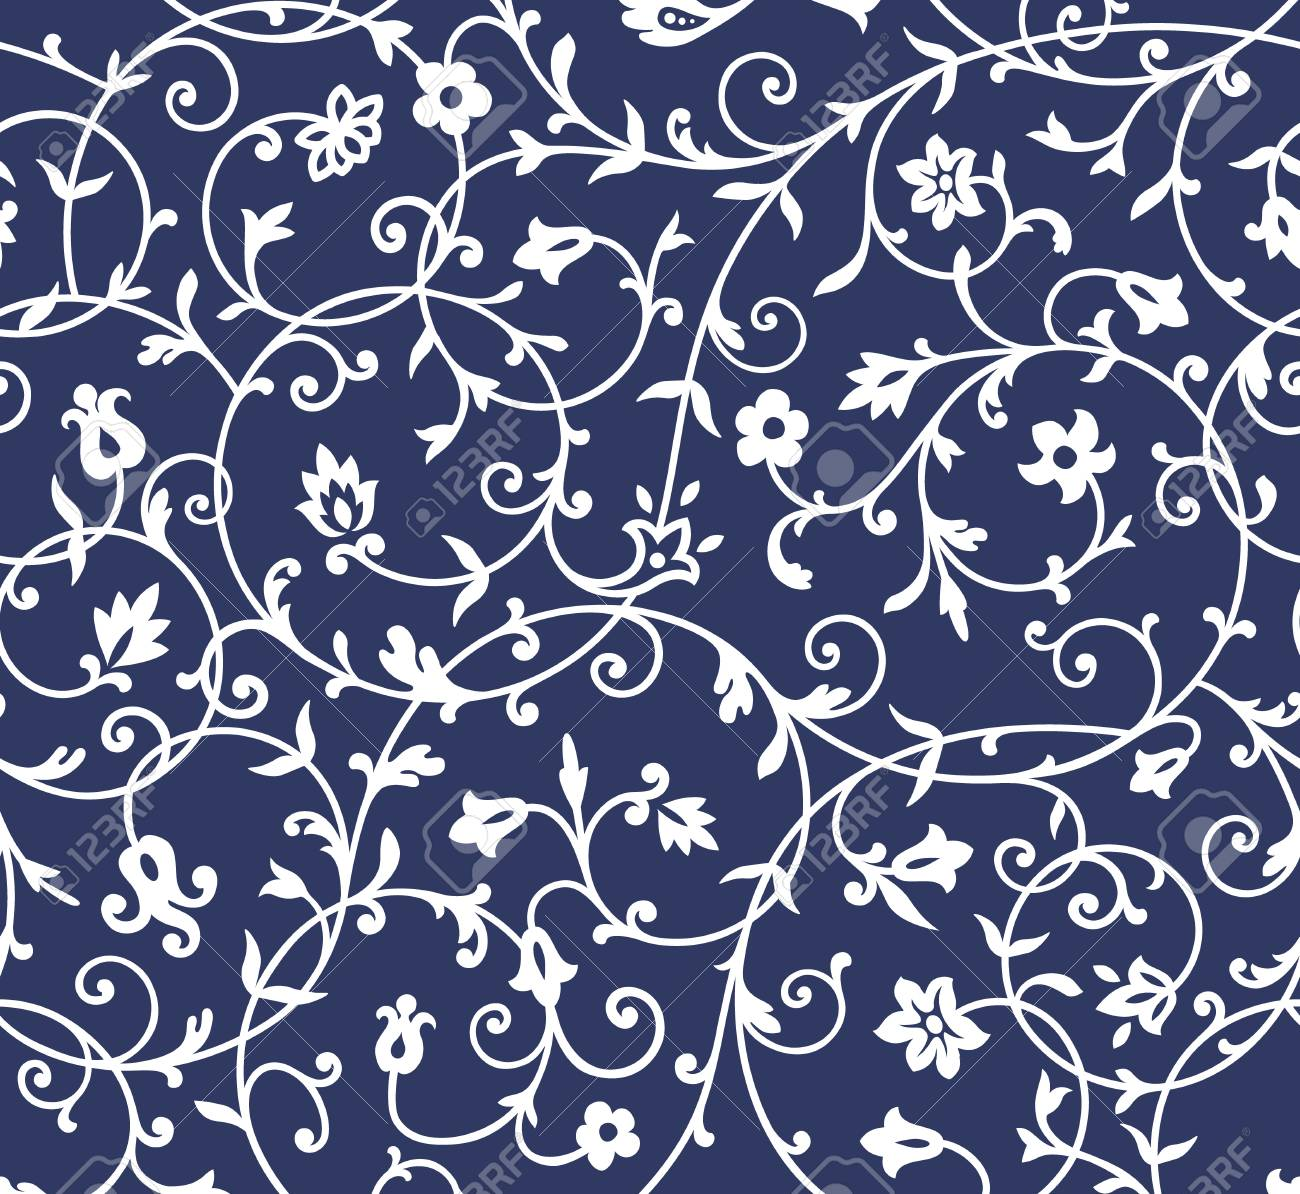 Vintage floral pattern rich ornament, old style pattern for wallpapers,..